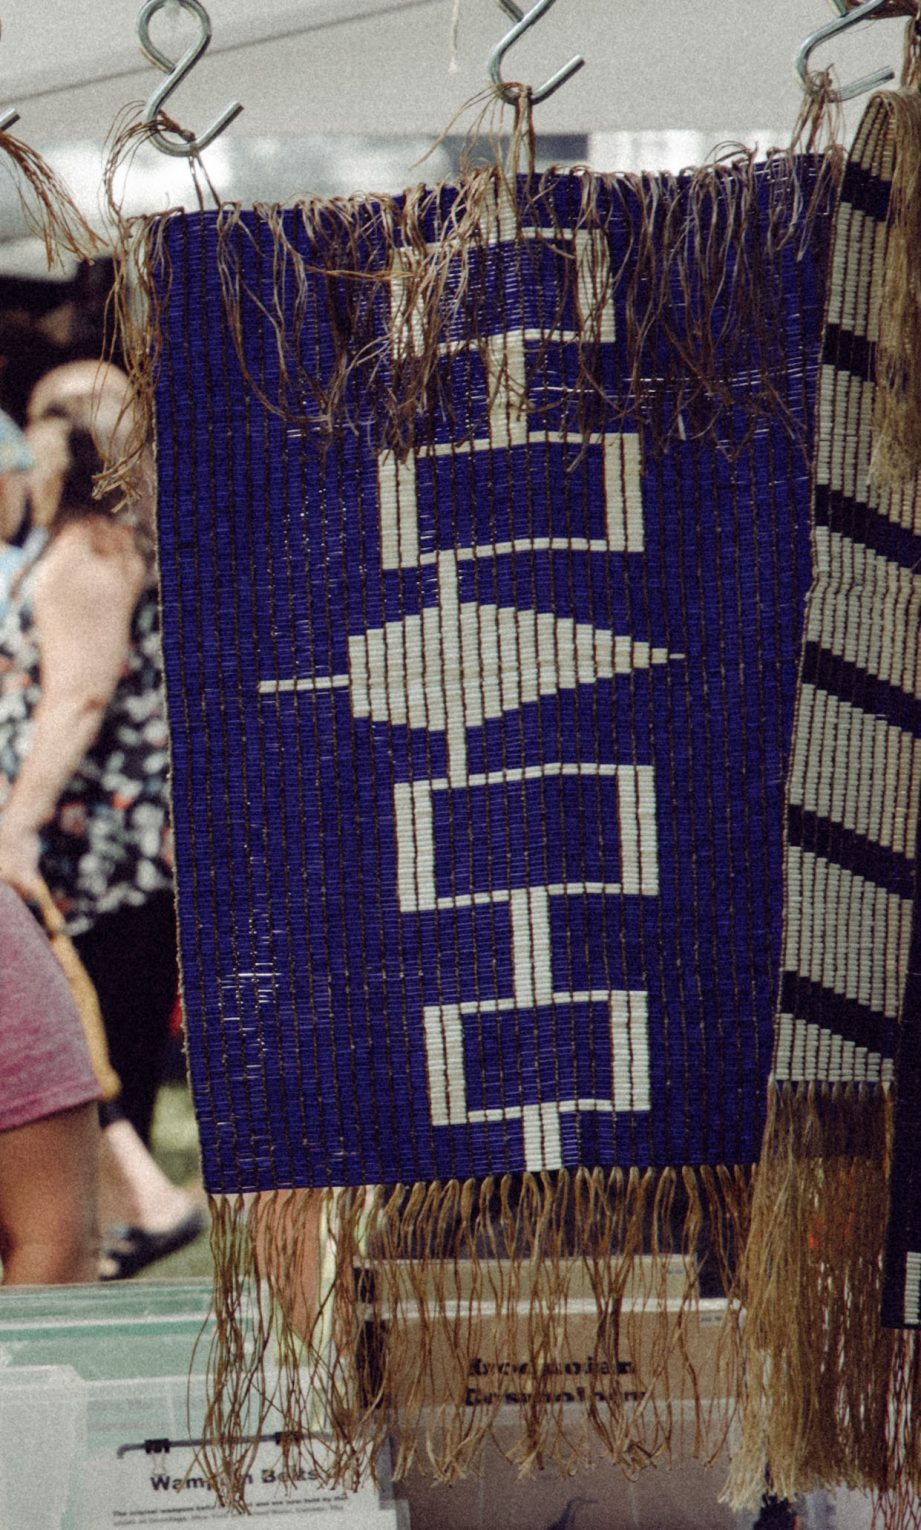 A row of beaded purple and white belts hanging from a wooden rod.